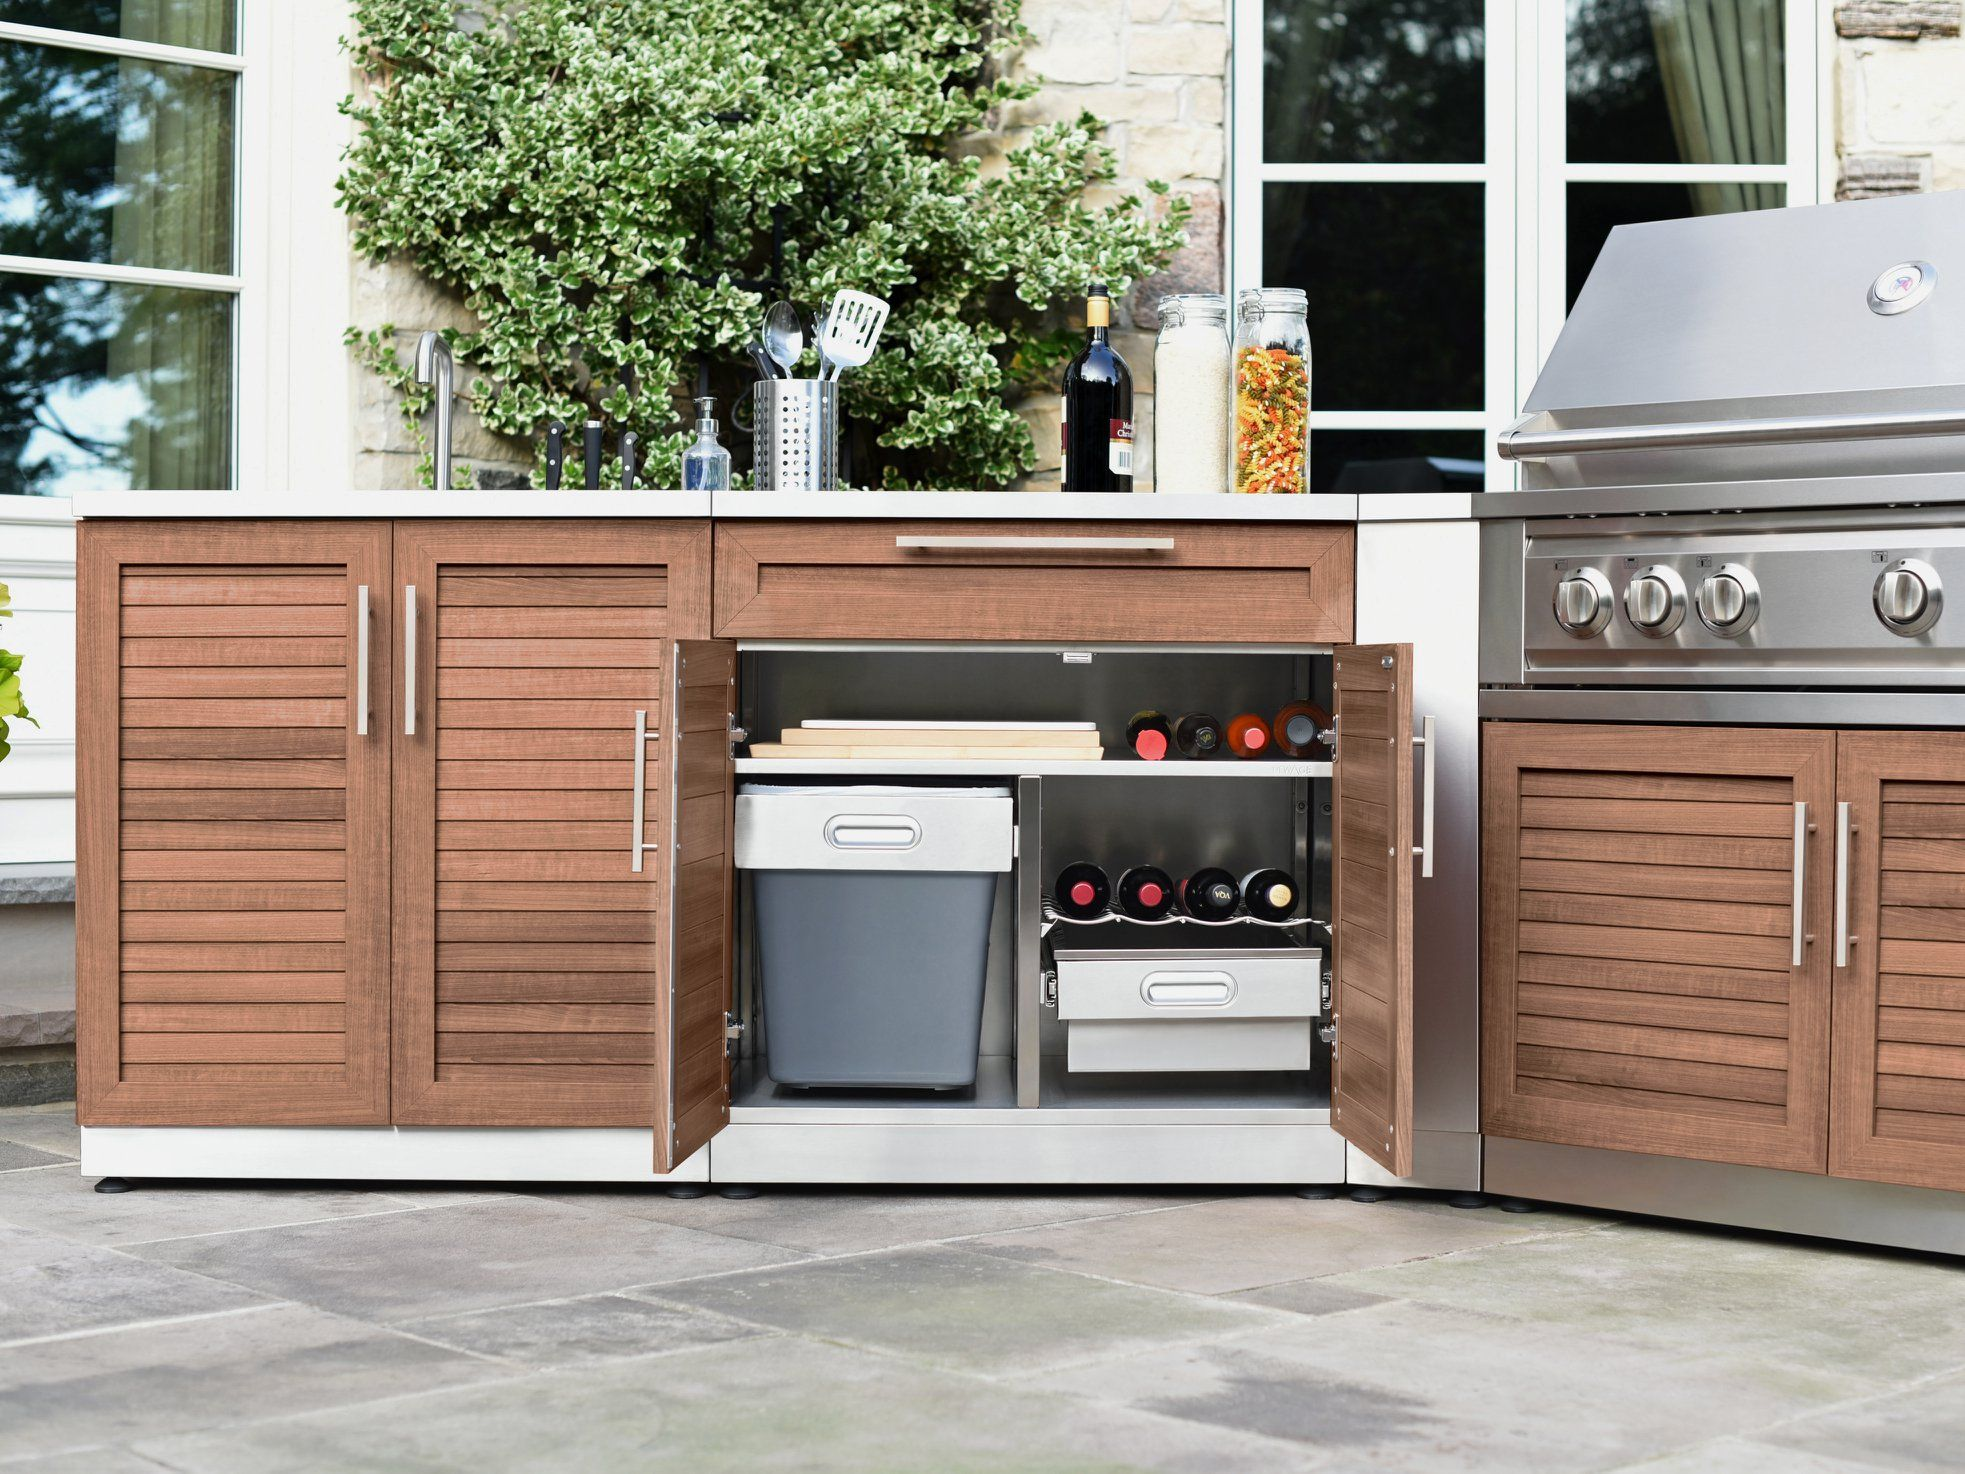 Newage Products Outdoor Kitchen Stainless Steel Series Outdoor Kitchen Outdoor Cabinet Modern Kitchen Cabinets